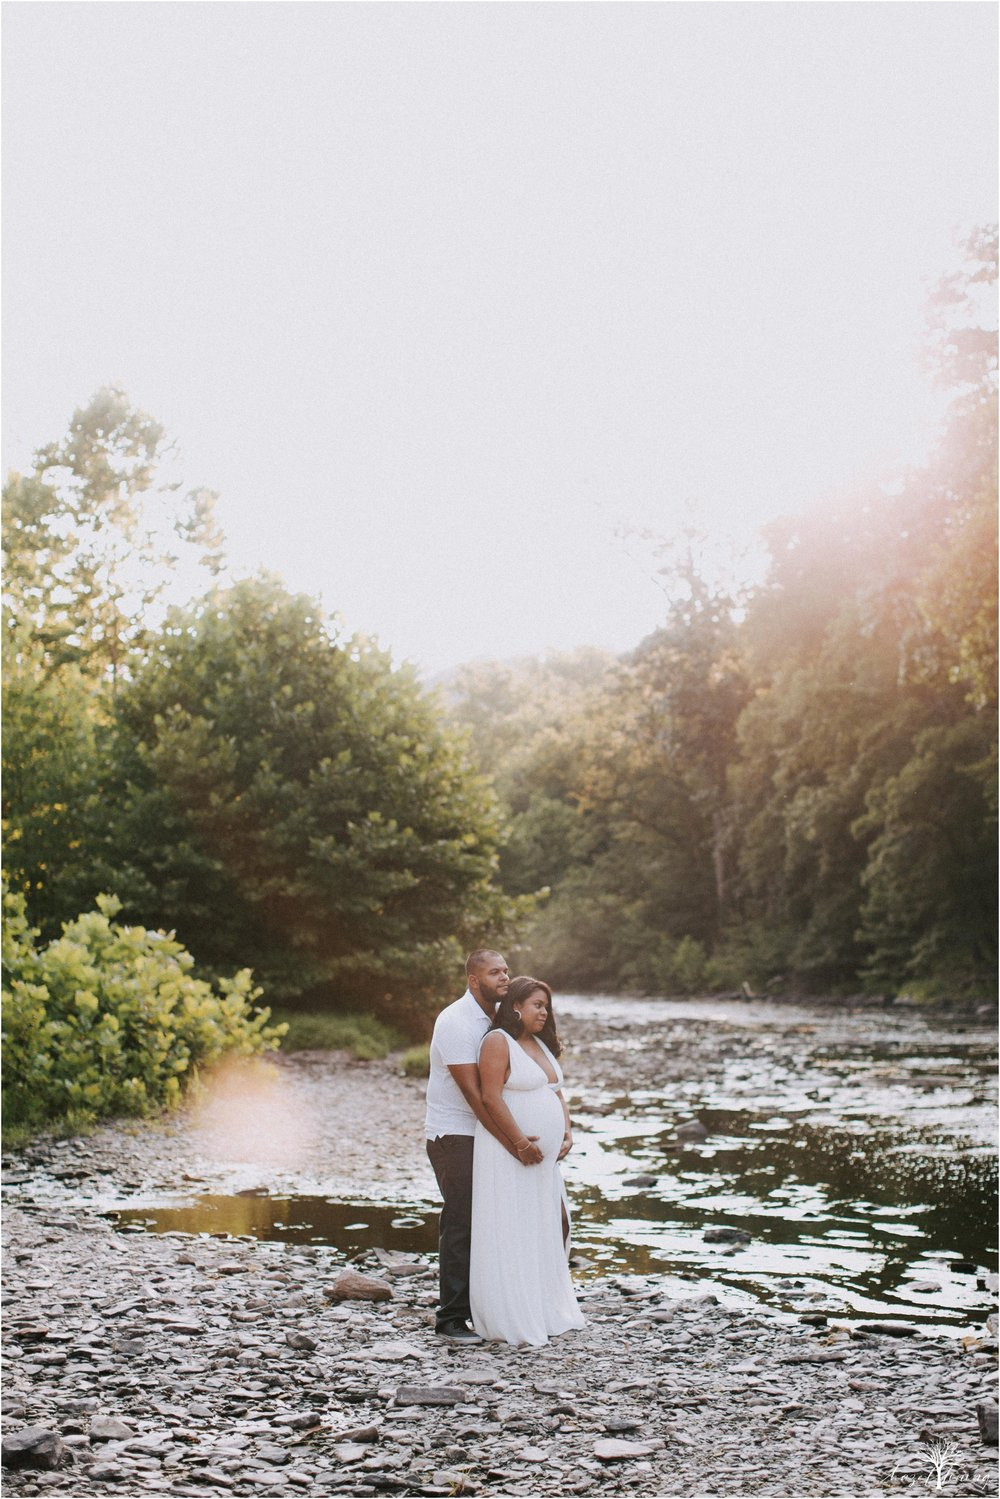 leyka-kristofer-chaparro-ralph-stover-state-park-summer-golden-hour-stream-maternity-session-hazel-lining-travel-wedding-elopement-photography_0023.jpg